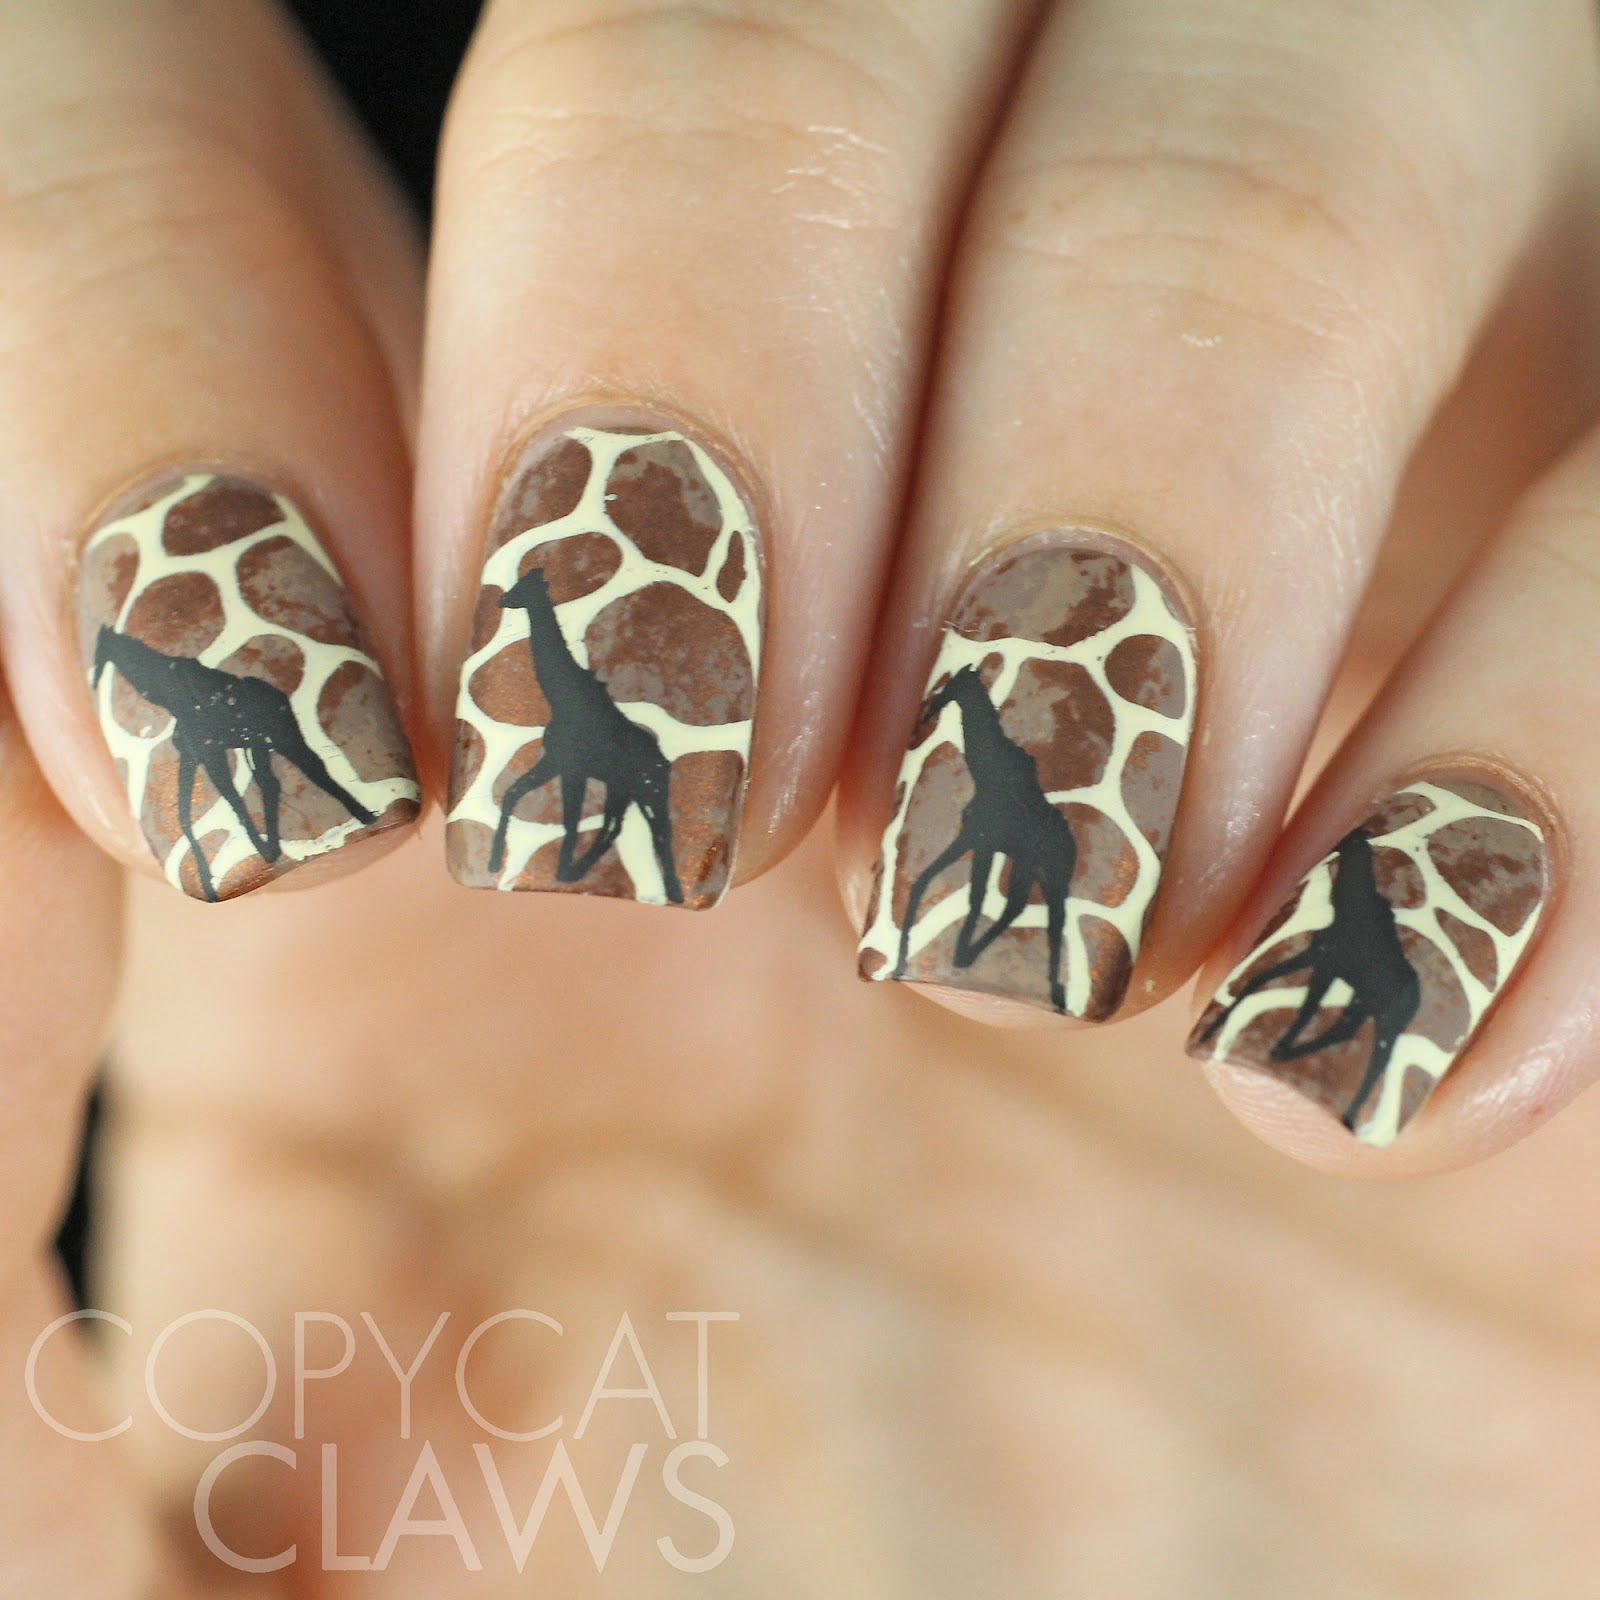 Copycat claws uberchic beauty out of africa 01 stamping plate review the full plate measures 95 cm x 145 cm with each full nail design measuring 17 mm x 21 mm amongst if not the largest on the prinsesfo Images